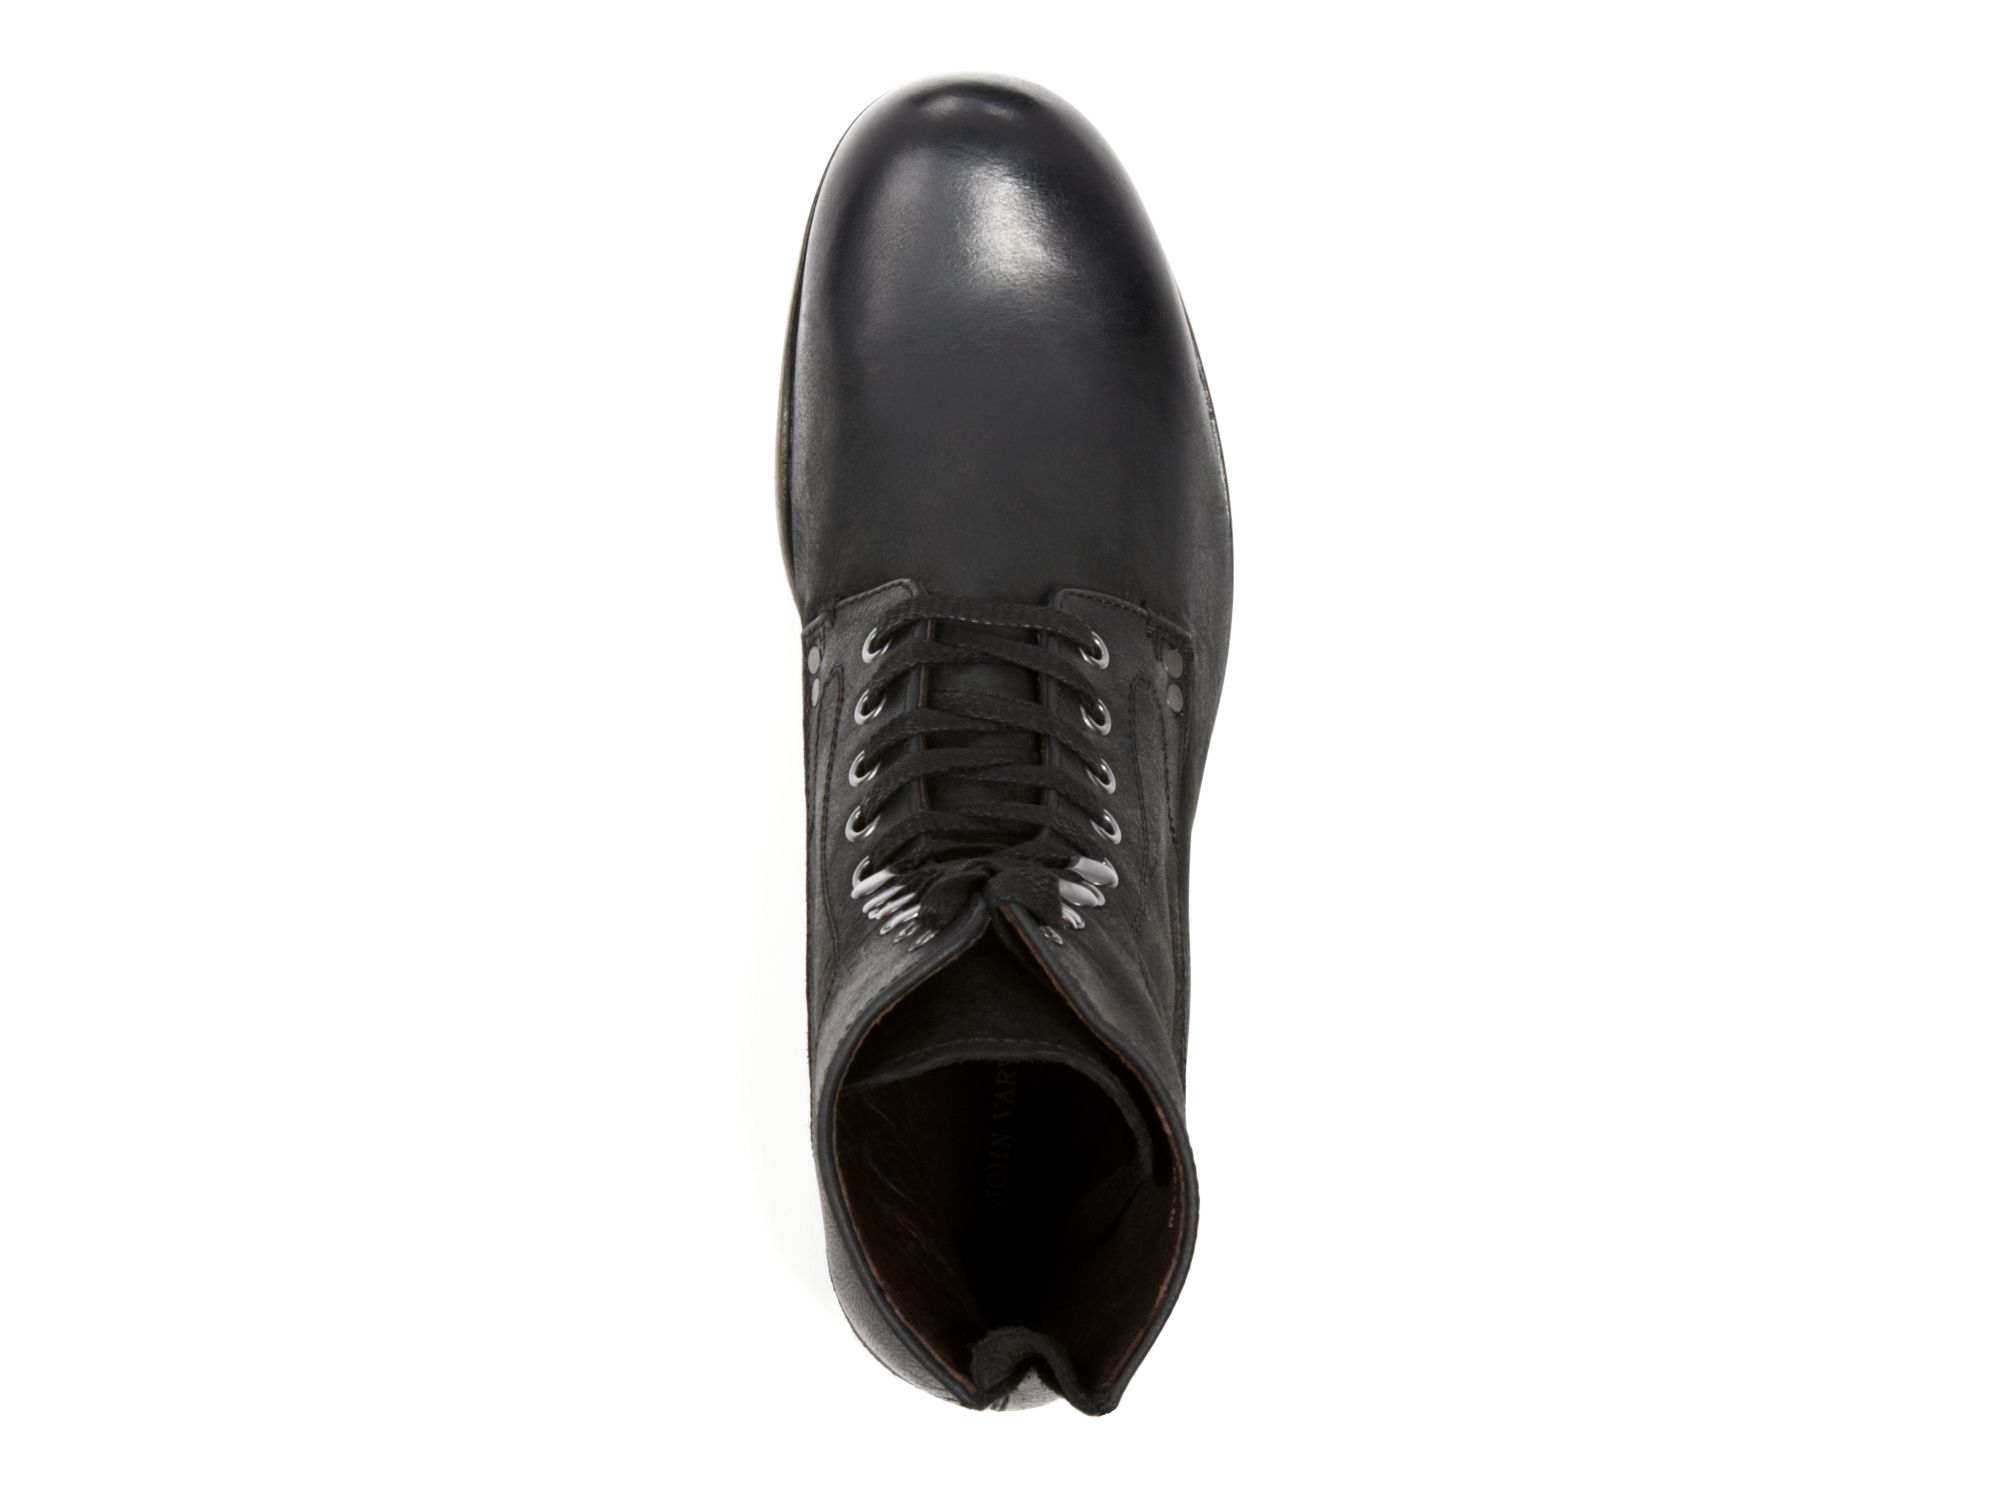 black single men in bonham Simple and sleek, the bonham black 13-inch tall men's exotic boot features a smooth black leather upper accented by an inventive ivory stitch pattern the polished smooth ostrich vamp sports a round toe and standard heel that offer a relaxed fit in the stirrup and its cushion comfort package® has a steel shank for maximum support and durability.